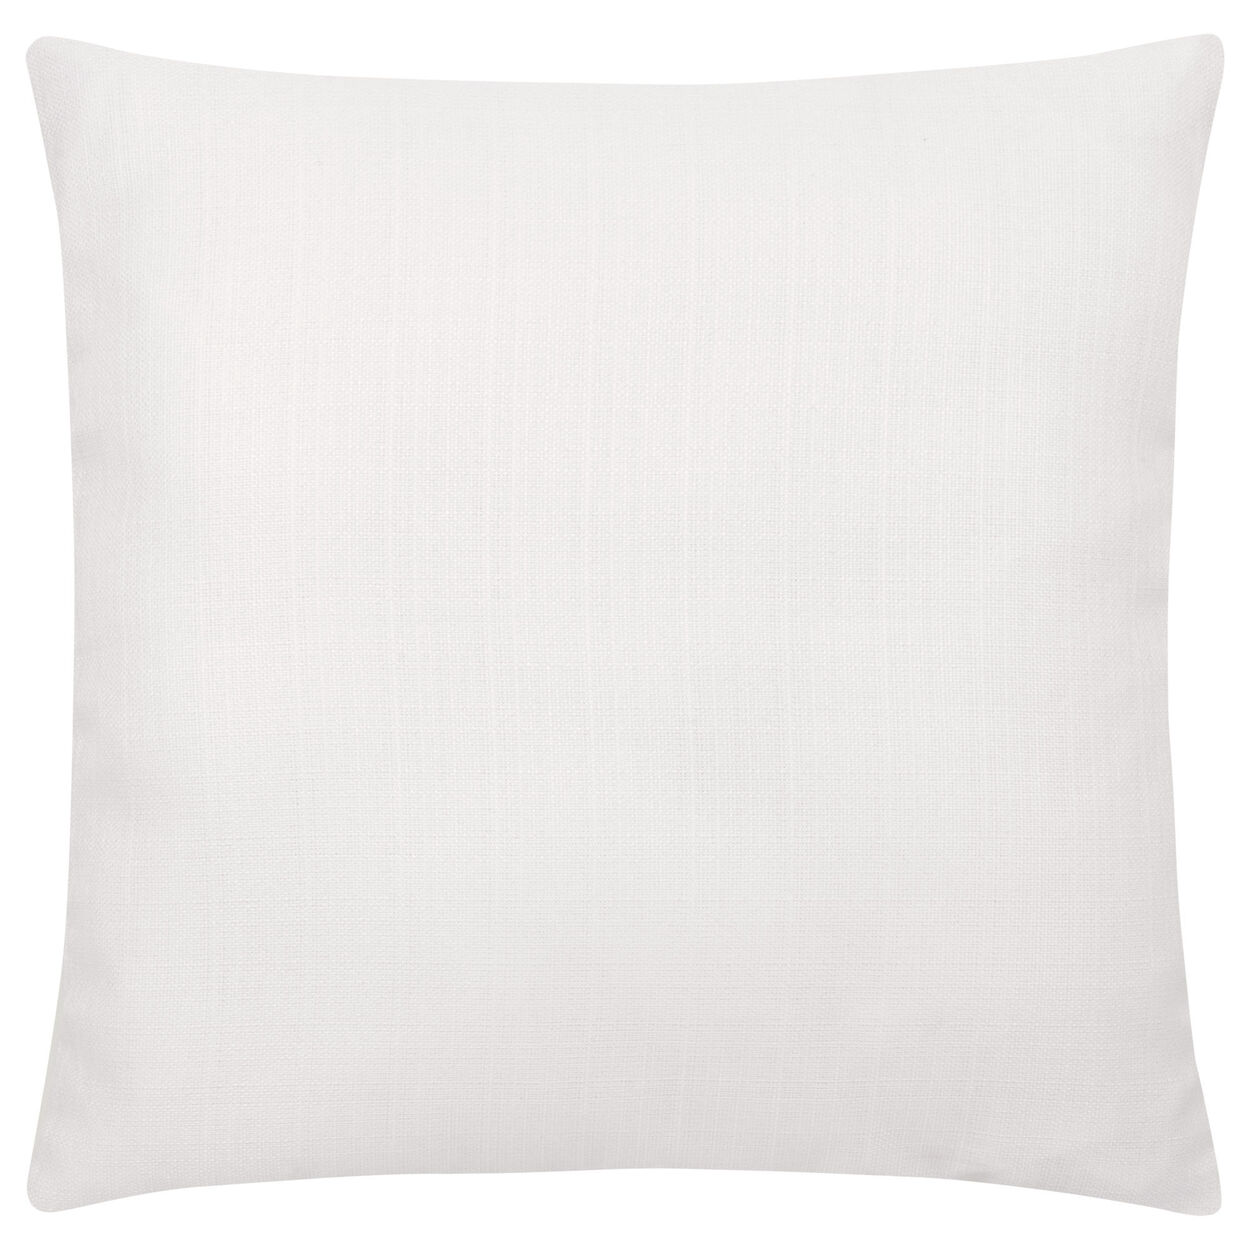 """The Best Is Yet To Come Decorative Pillow 19"""" x 19"""""""